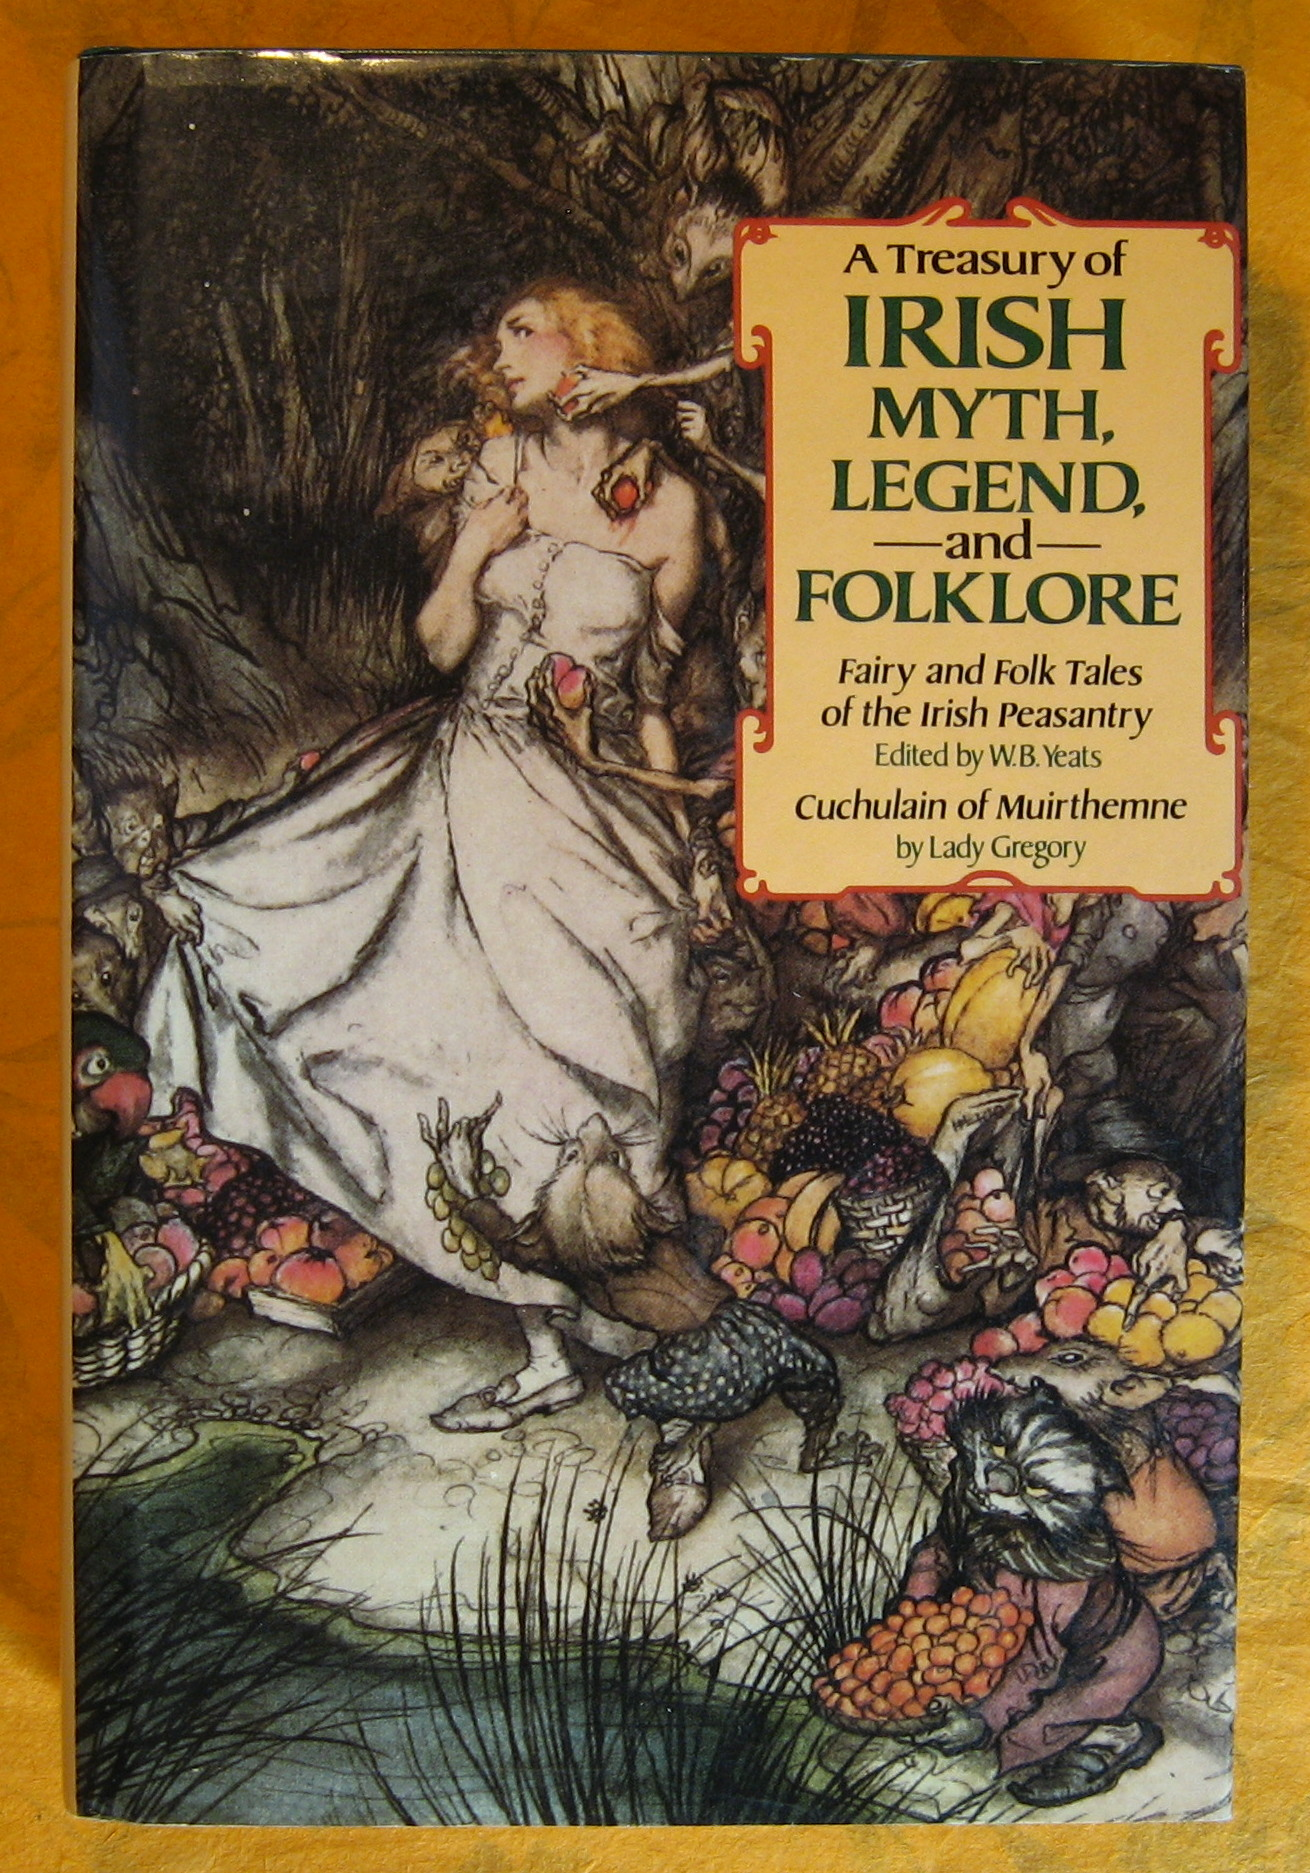 Image for A Treasury of Irish Myth, Legend & Folklore (Fairy and Folk Tales of the Irish Peasantry / Cuchulain of Muirthemne)